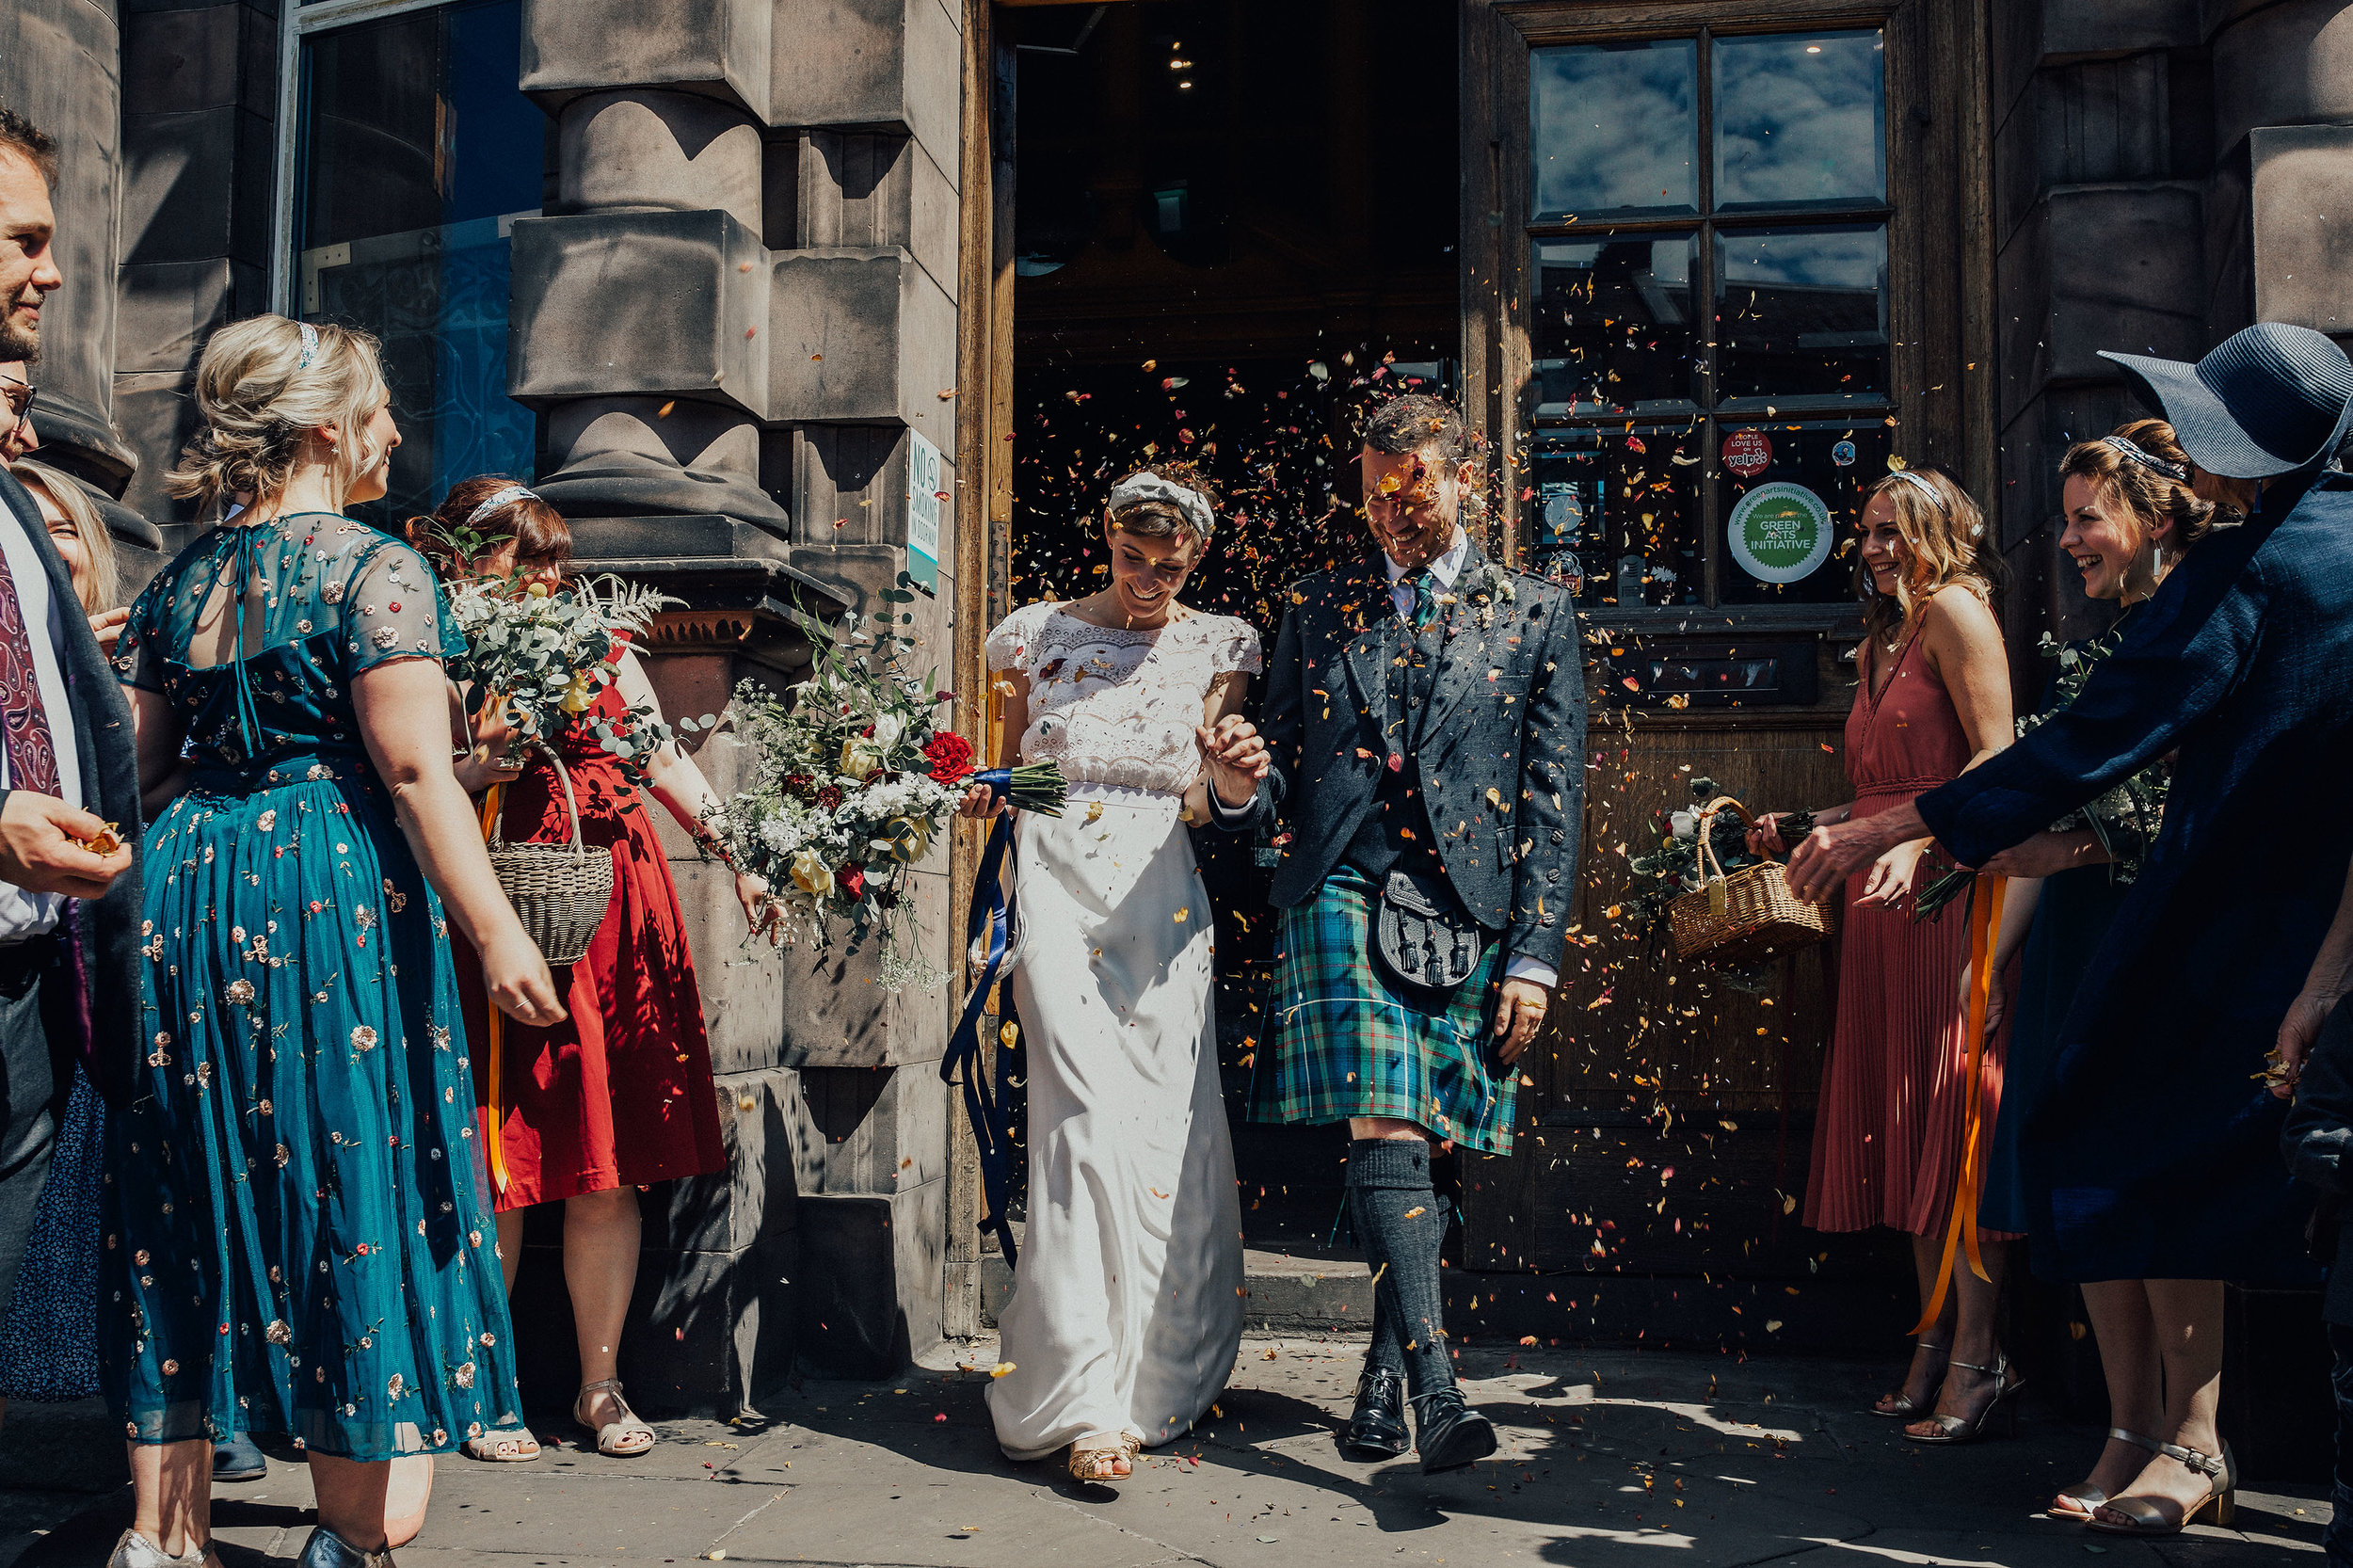 TIMBERYARD_EDINBURGH_WEDDING_PJ_PHILLIPS_PHOTOGRAPHY_105.jpg